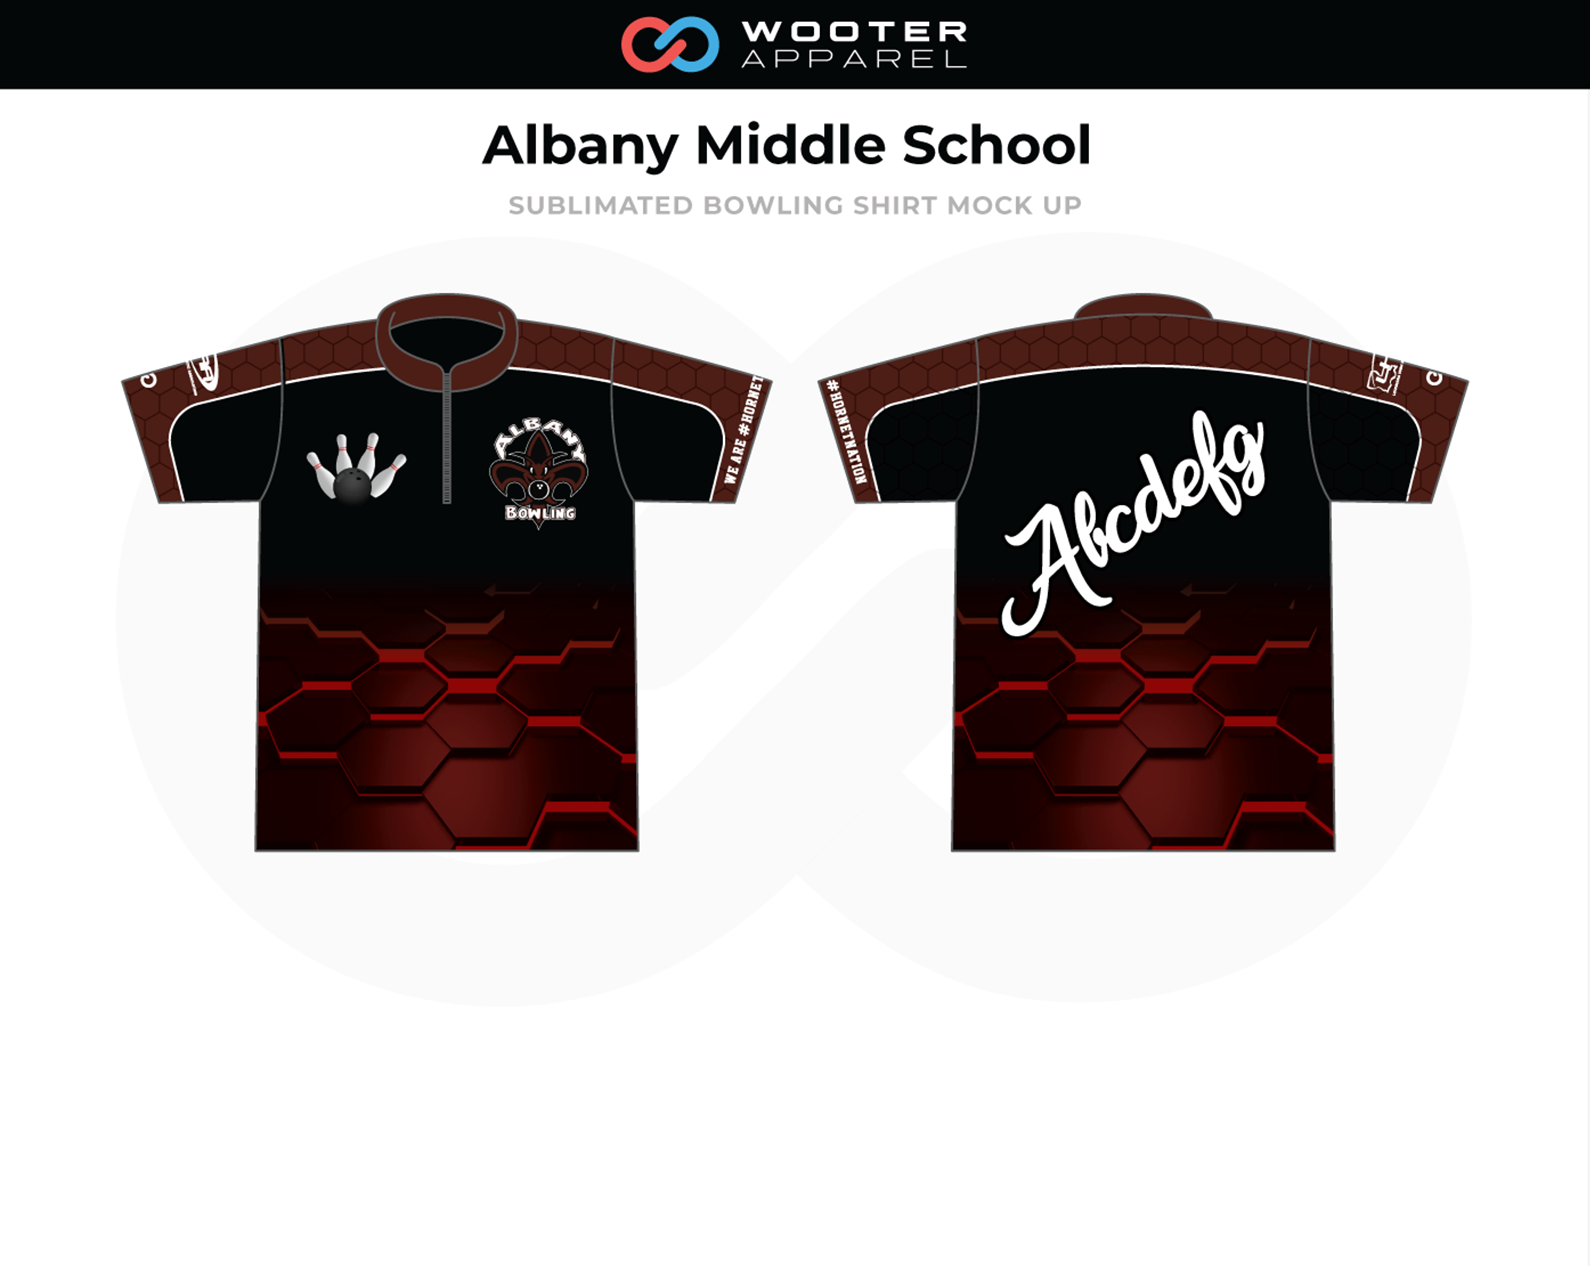 Albany-Middle-School--Bowling-Sublimated-Bowling-Shirt-Mock-Up_v1_2018.png